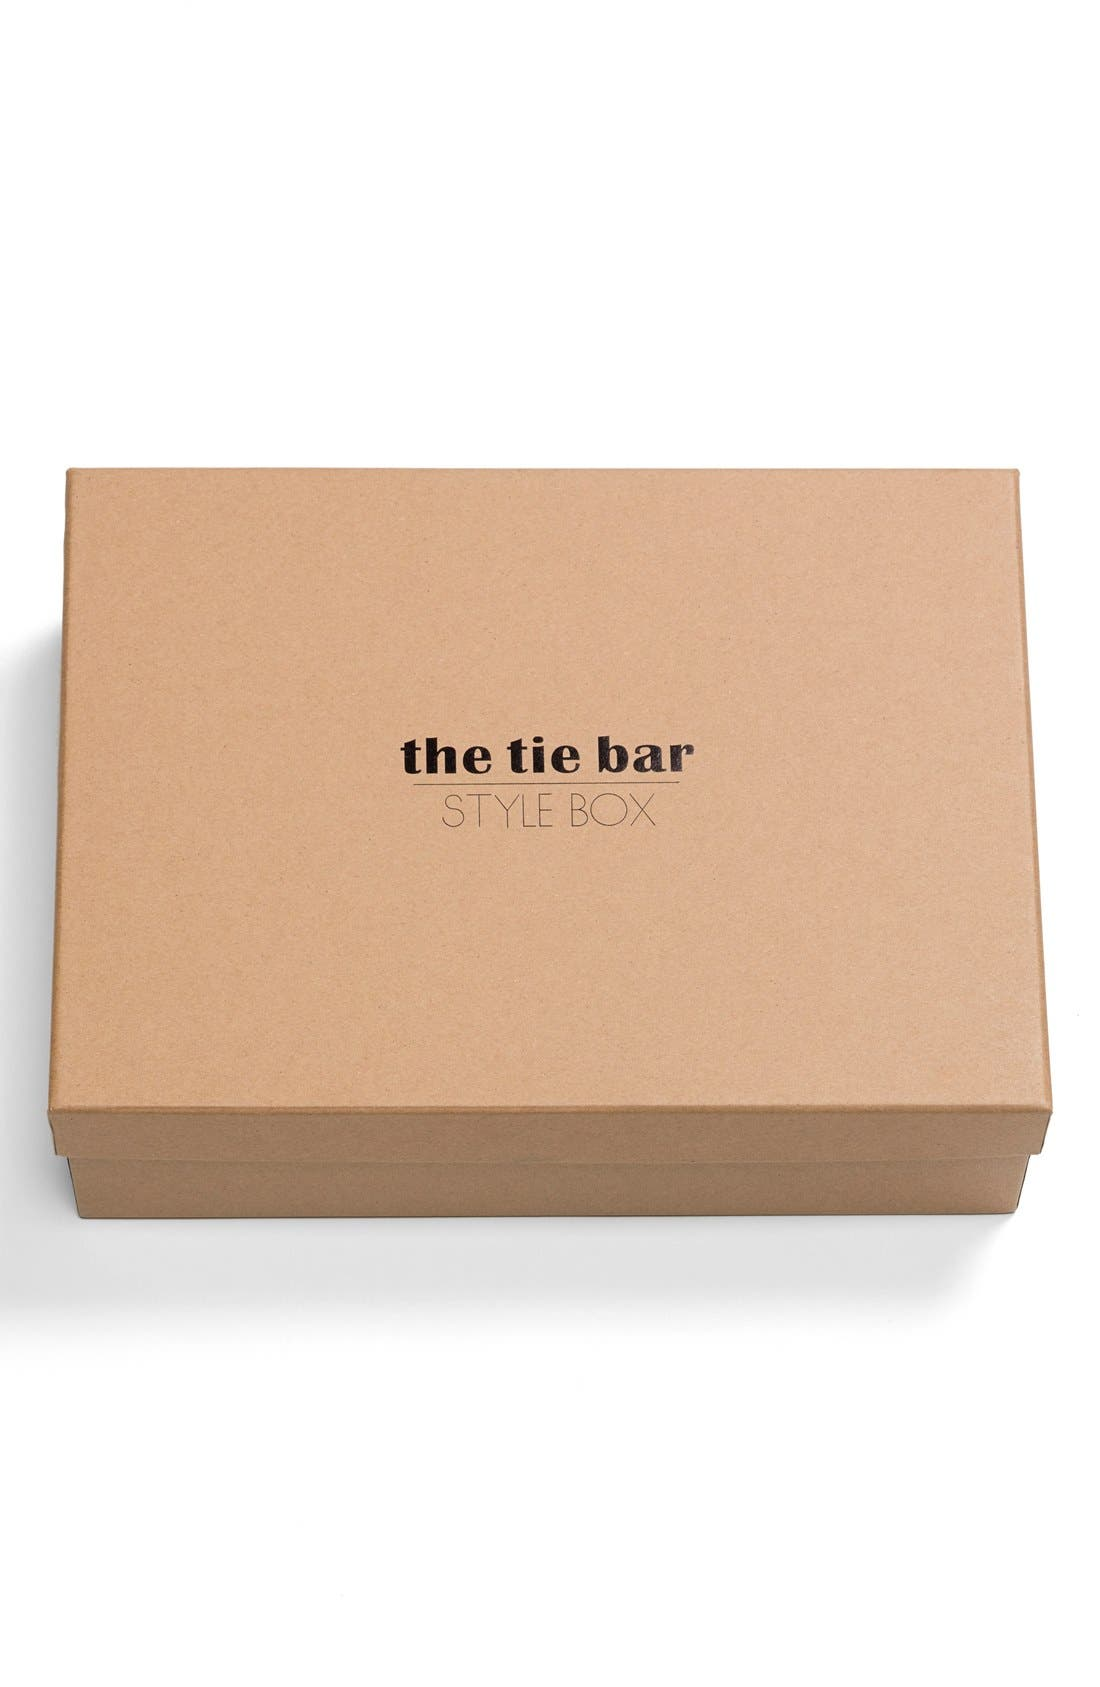 THE TIE BAR, Large Style Box, Alternate thumbnail 3, color, 401